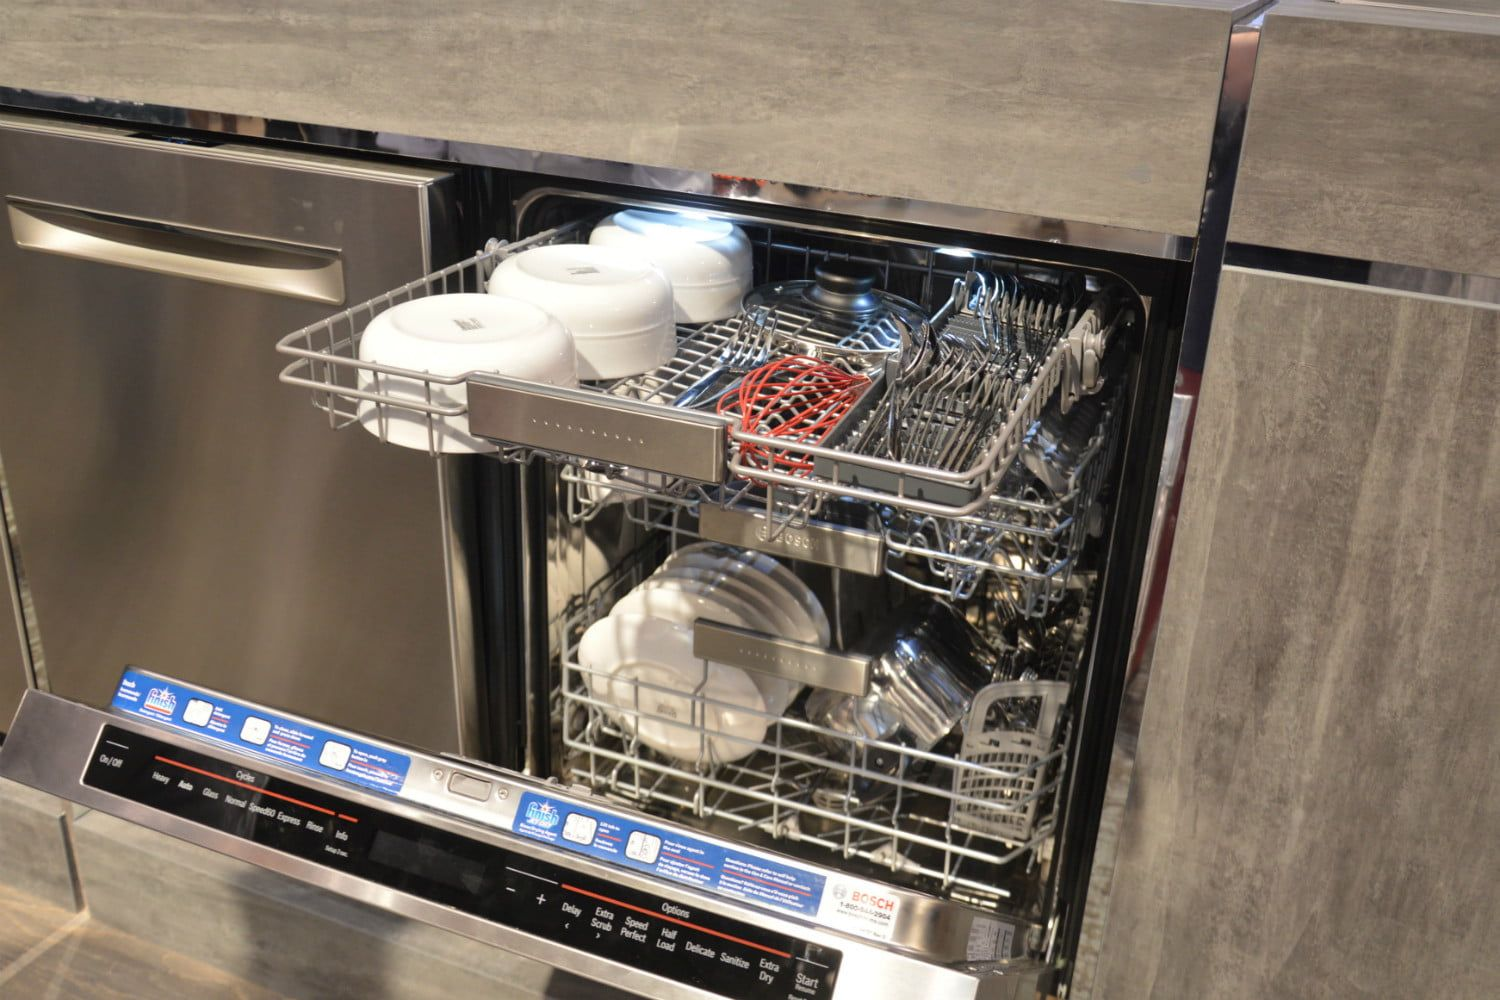 Bosch And Other Dishwashers Recalled Due To Faulty Cords Catching Fire Digital Trends Home Appliances Appliances Outlet Dishwasher